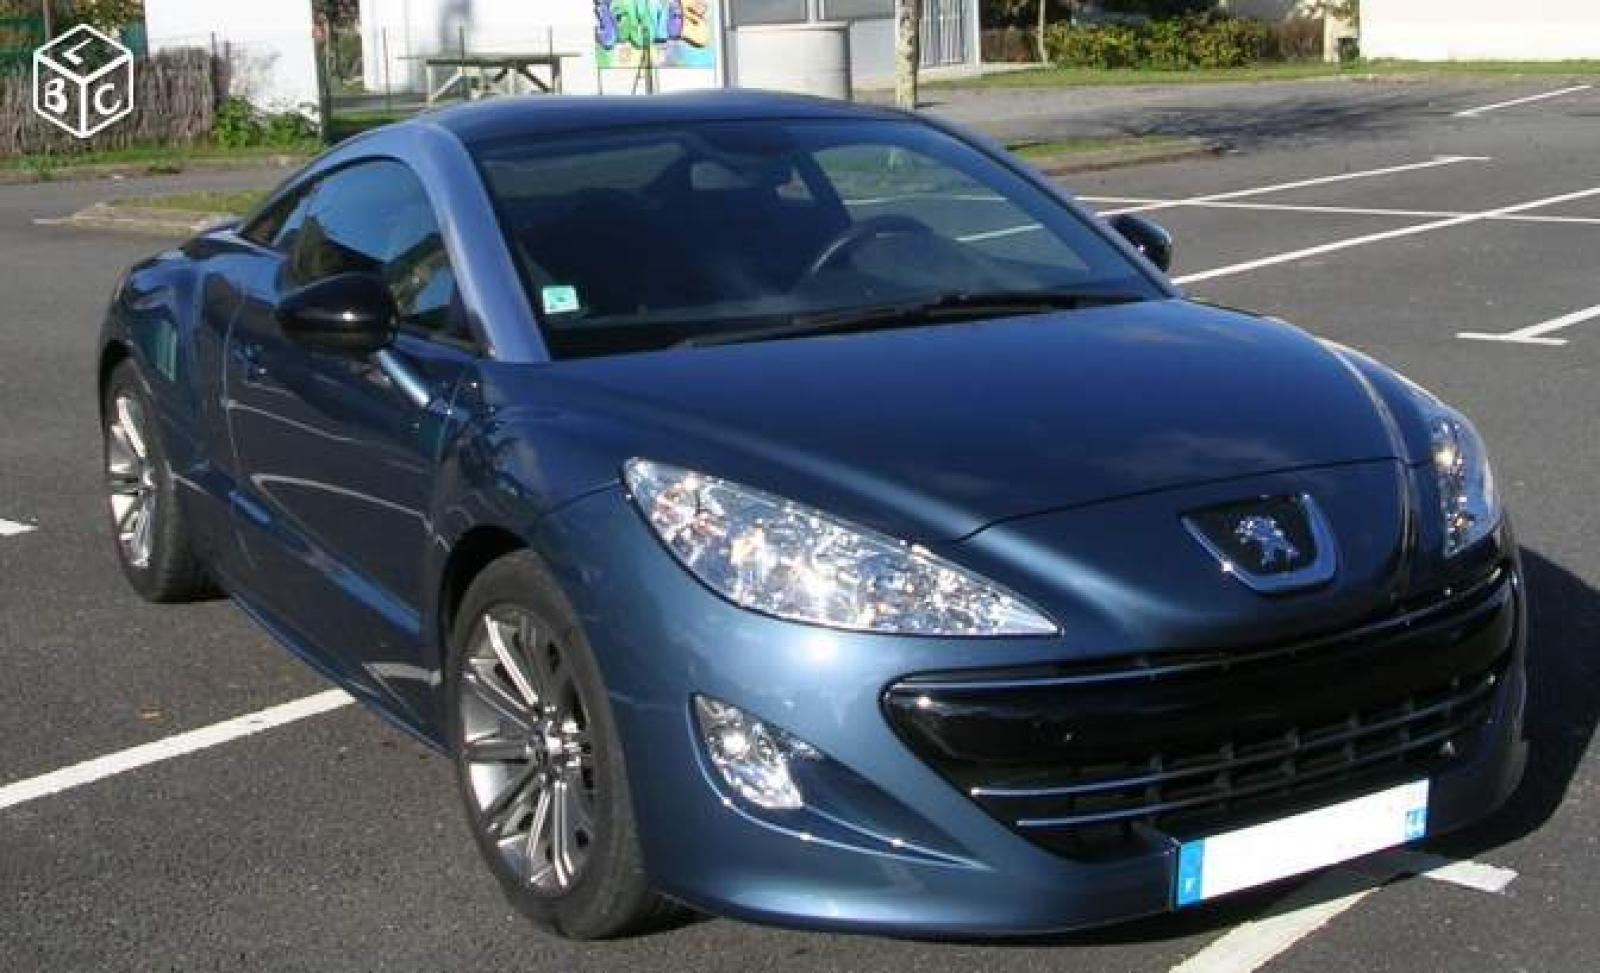 peugeot rcz bleue tuanake d 39 occasion voiture neuve et d 39 occasion de luxe marseille avon. Black Bedroom Furniture Sets. Home Design Ideas